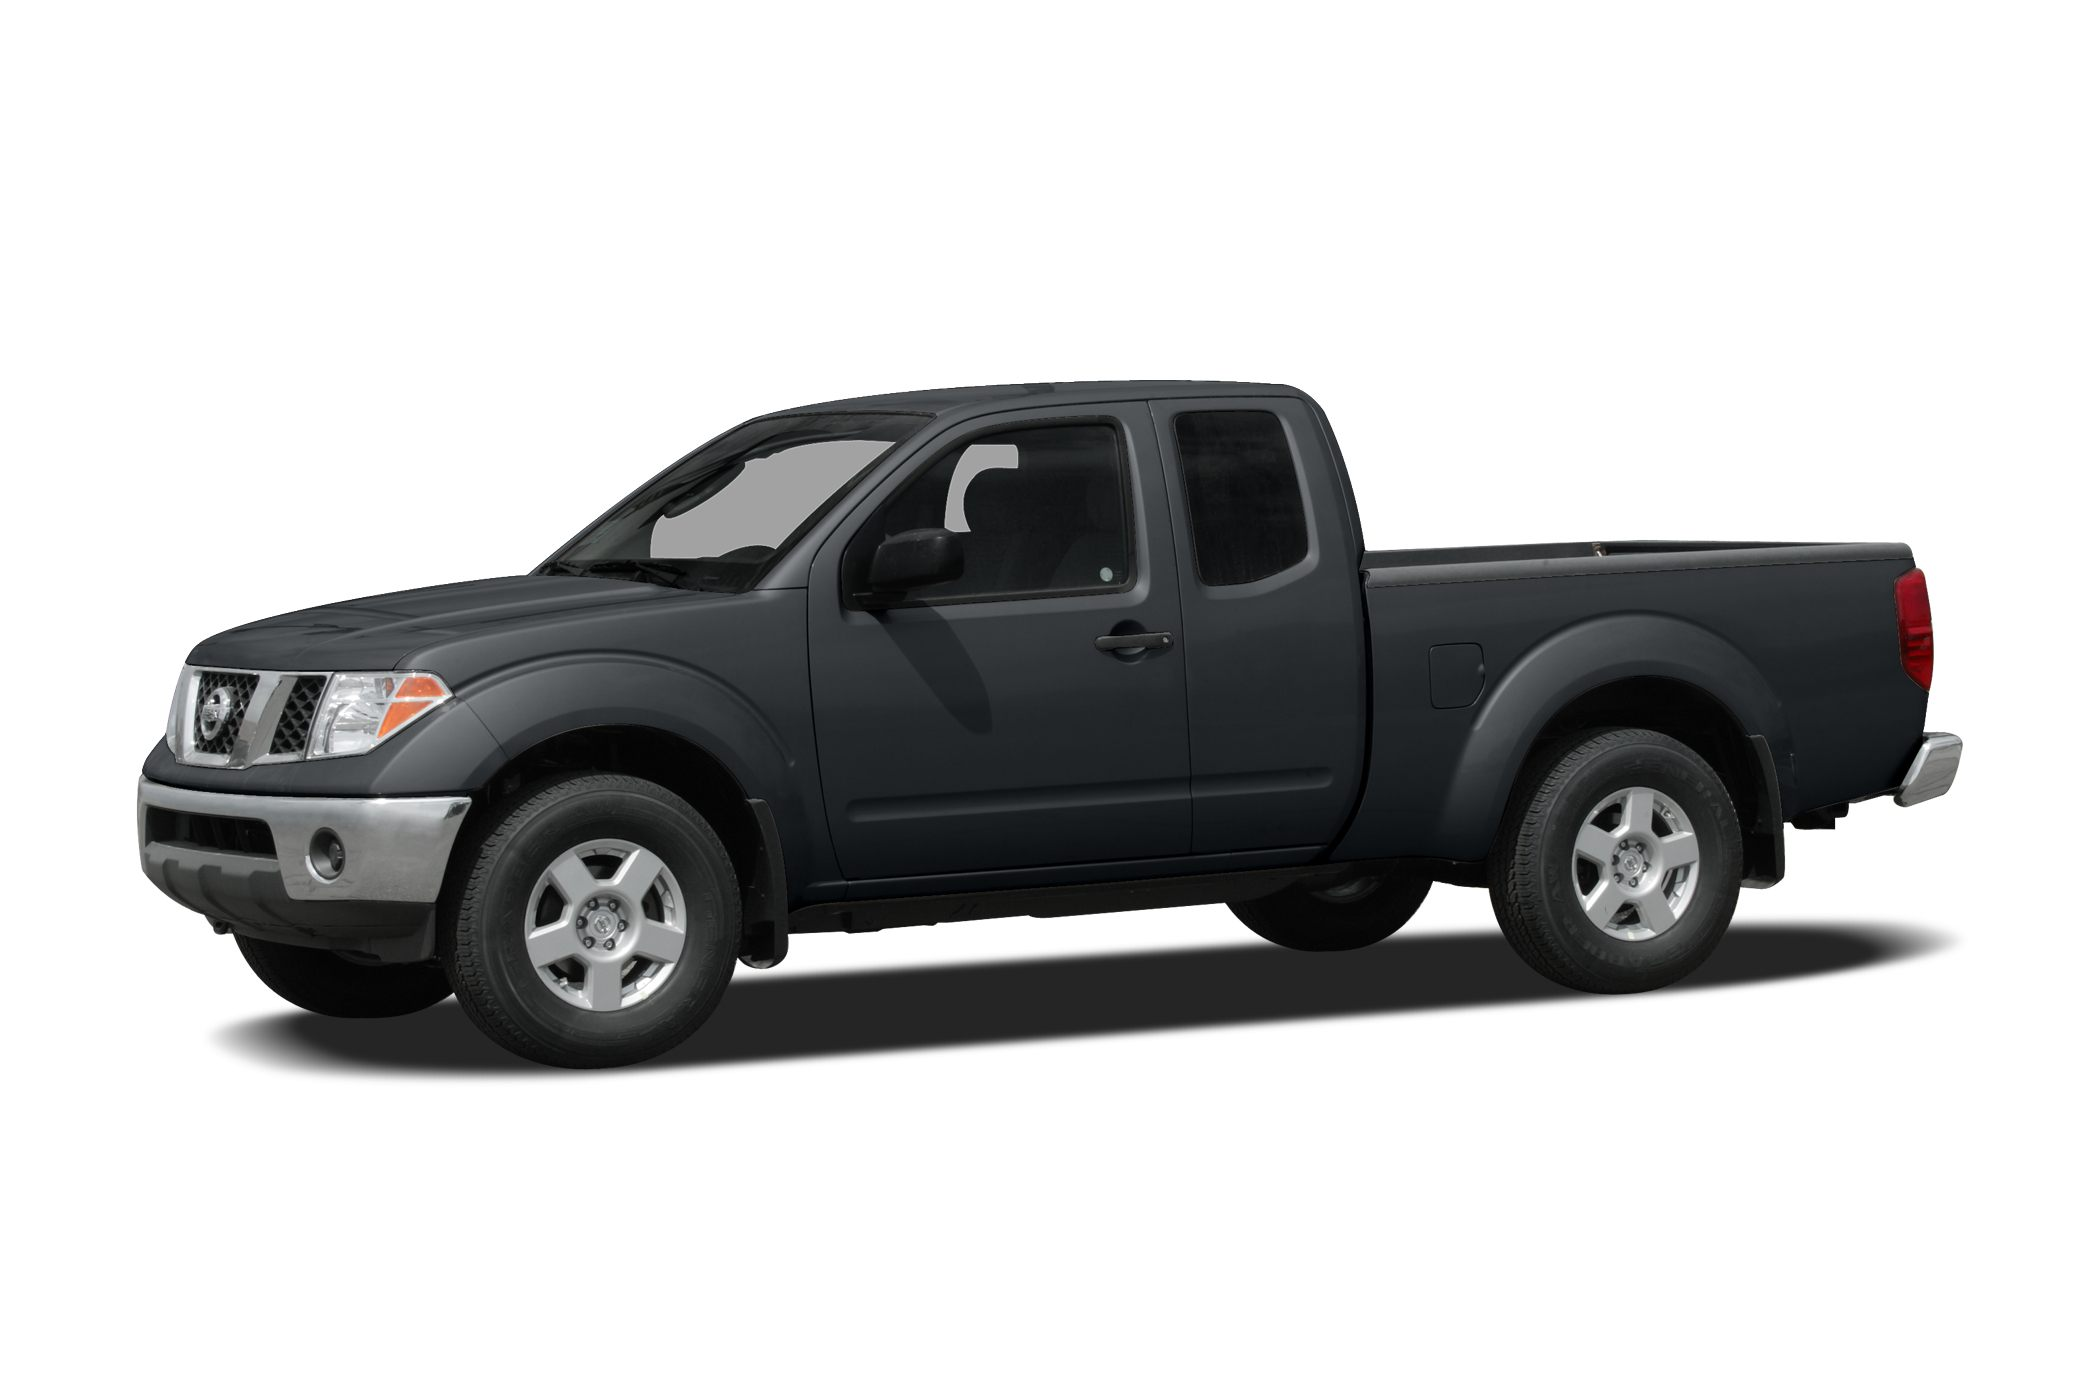 2008 Nissan Frontier SE Crew Cab Pickup for sale in Kerrville for $15,450 with 73,171 miles